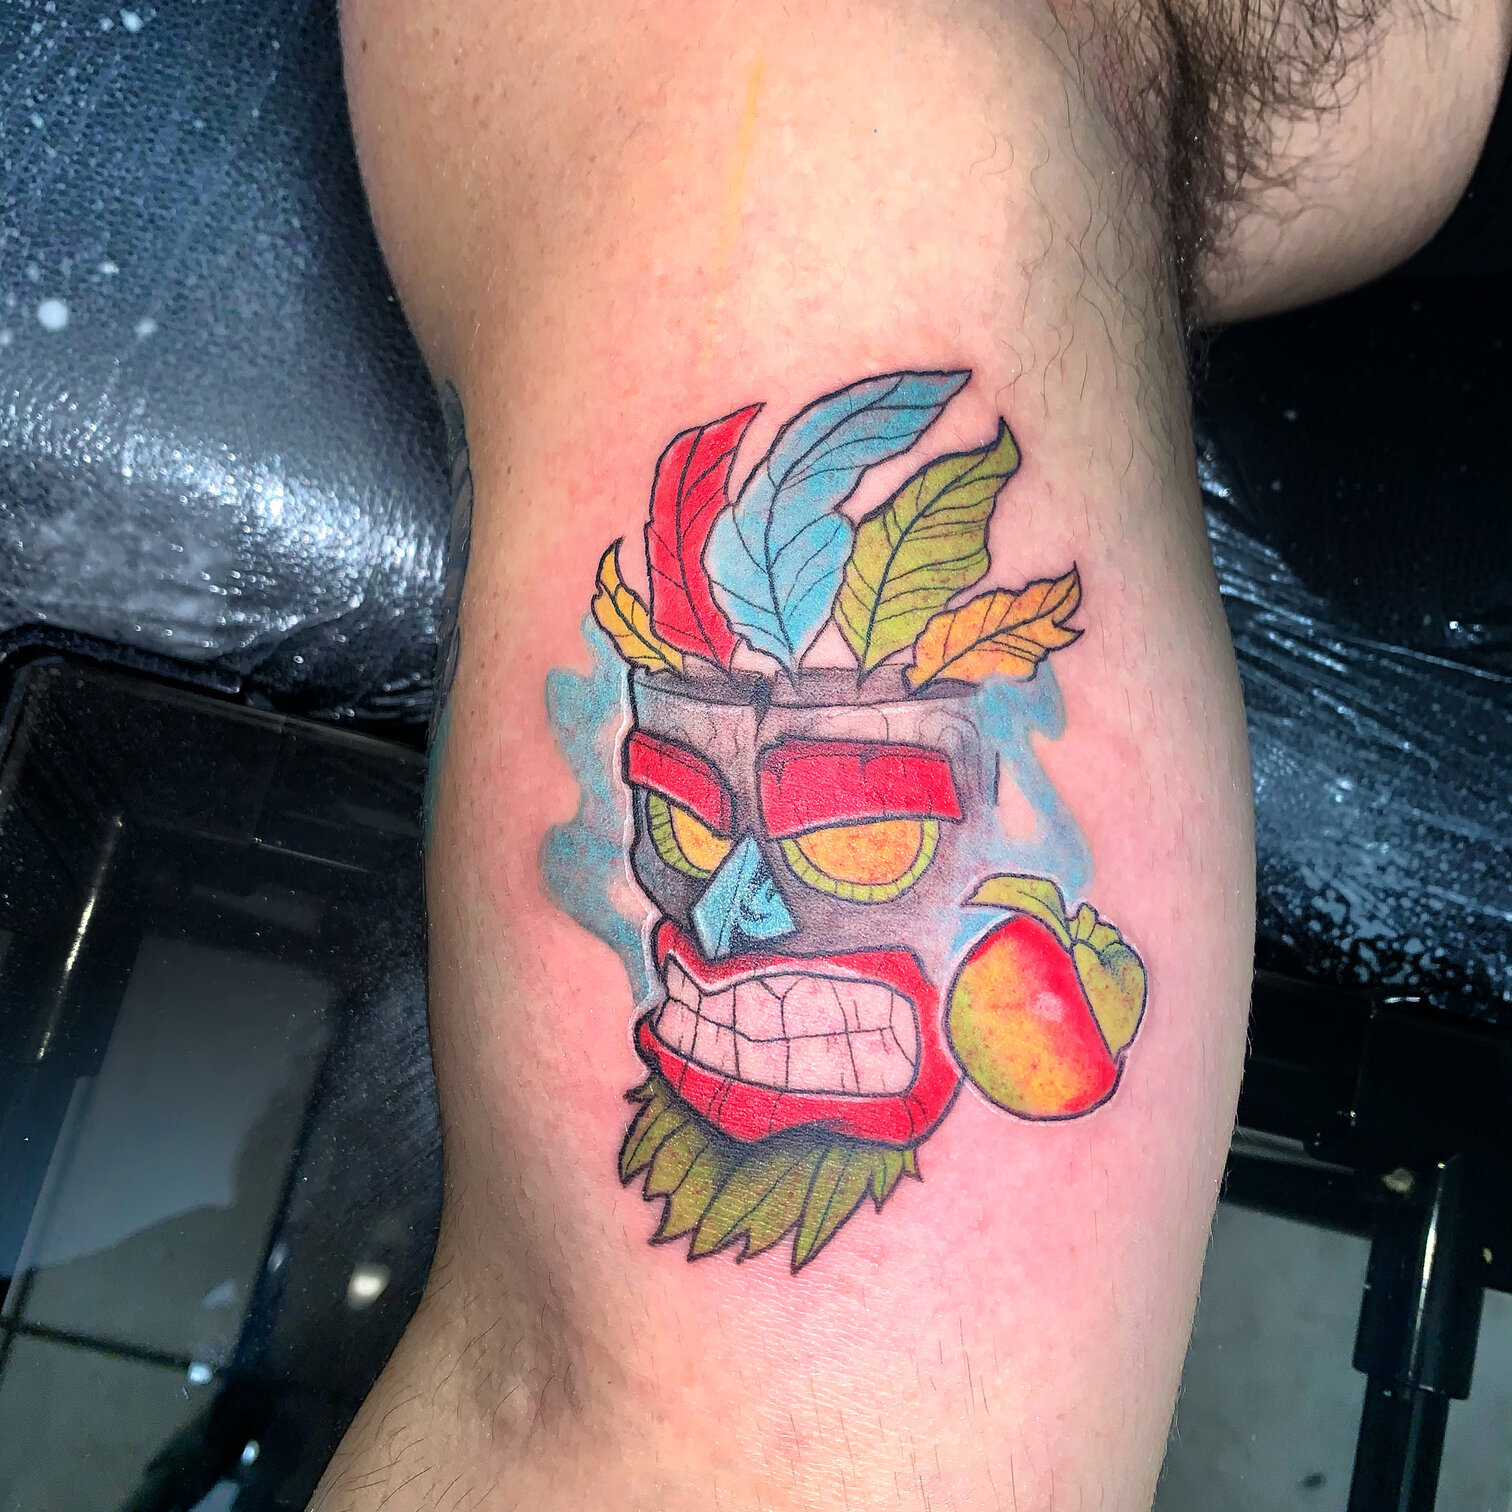 domencre-tattoo-artist-tiki-mask